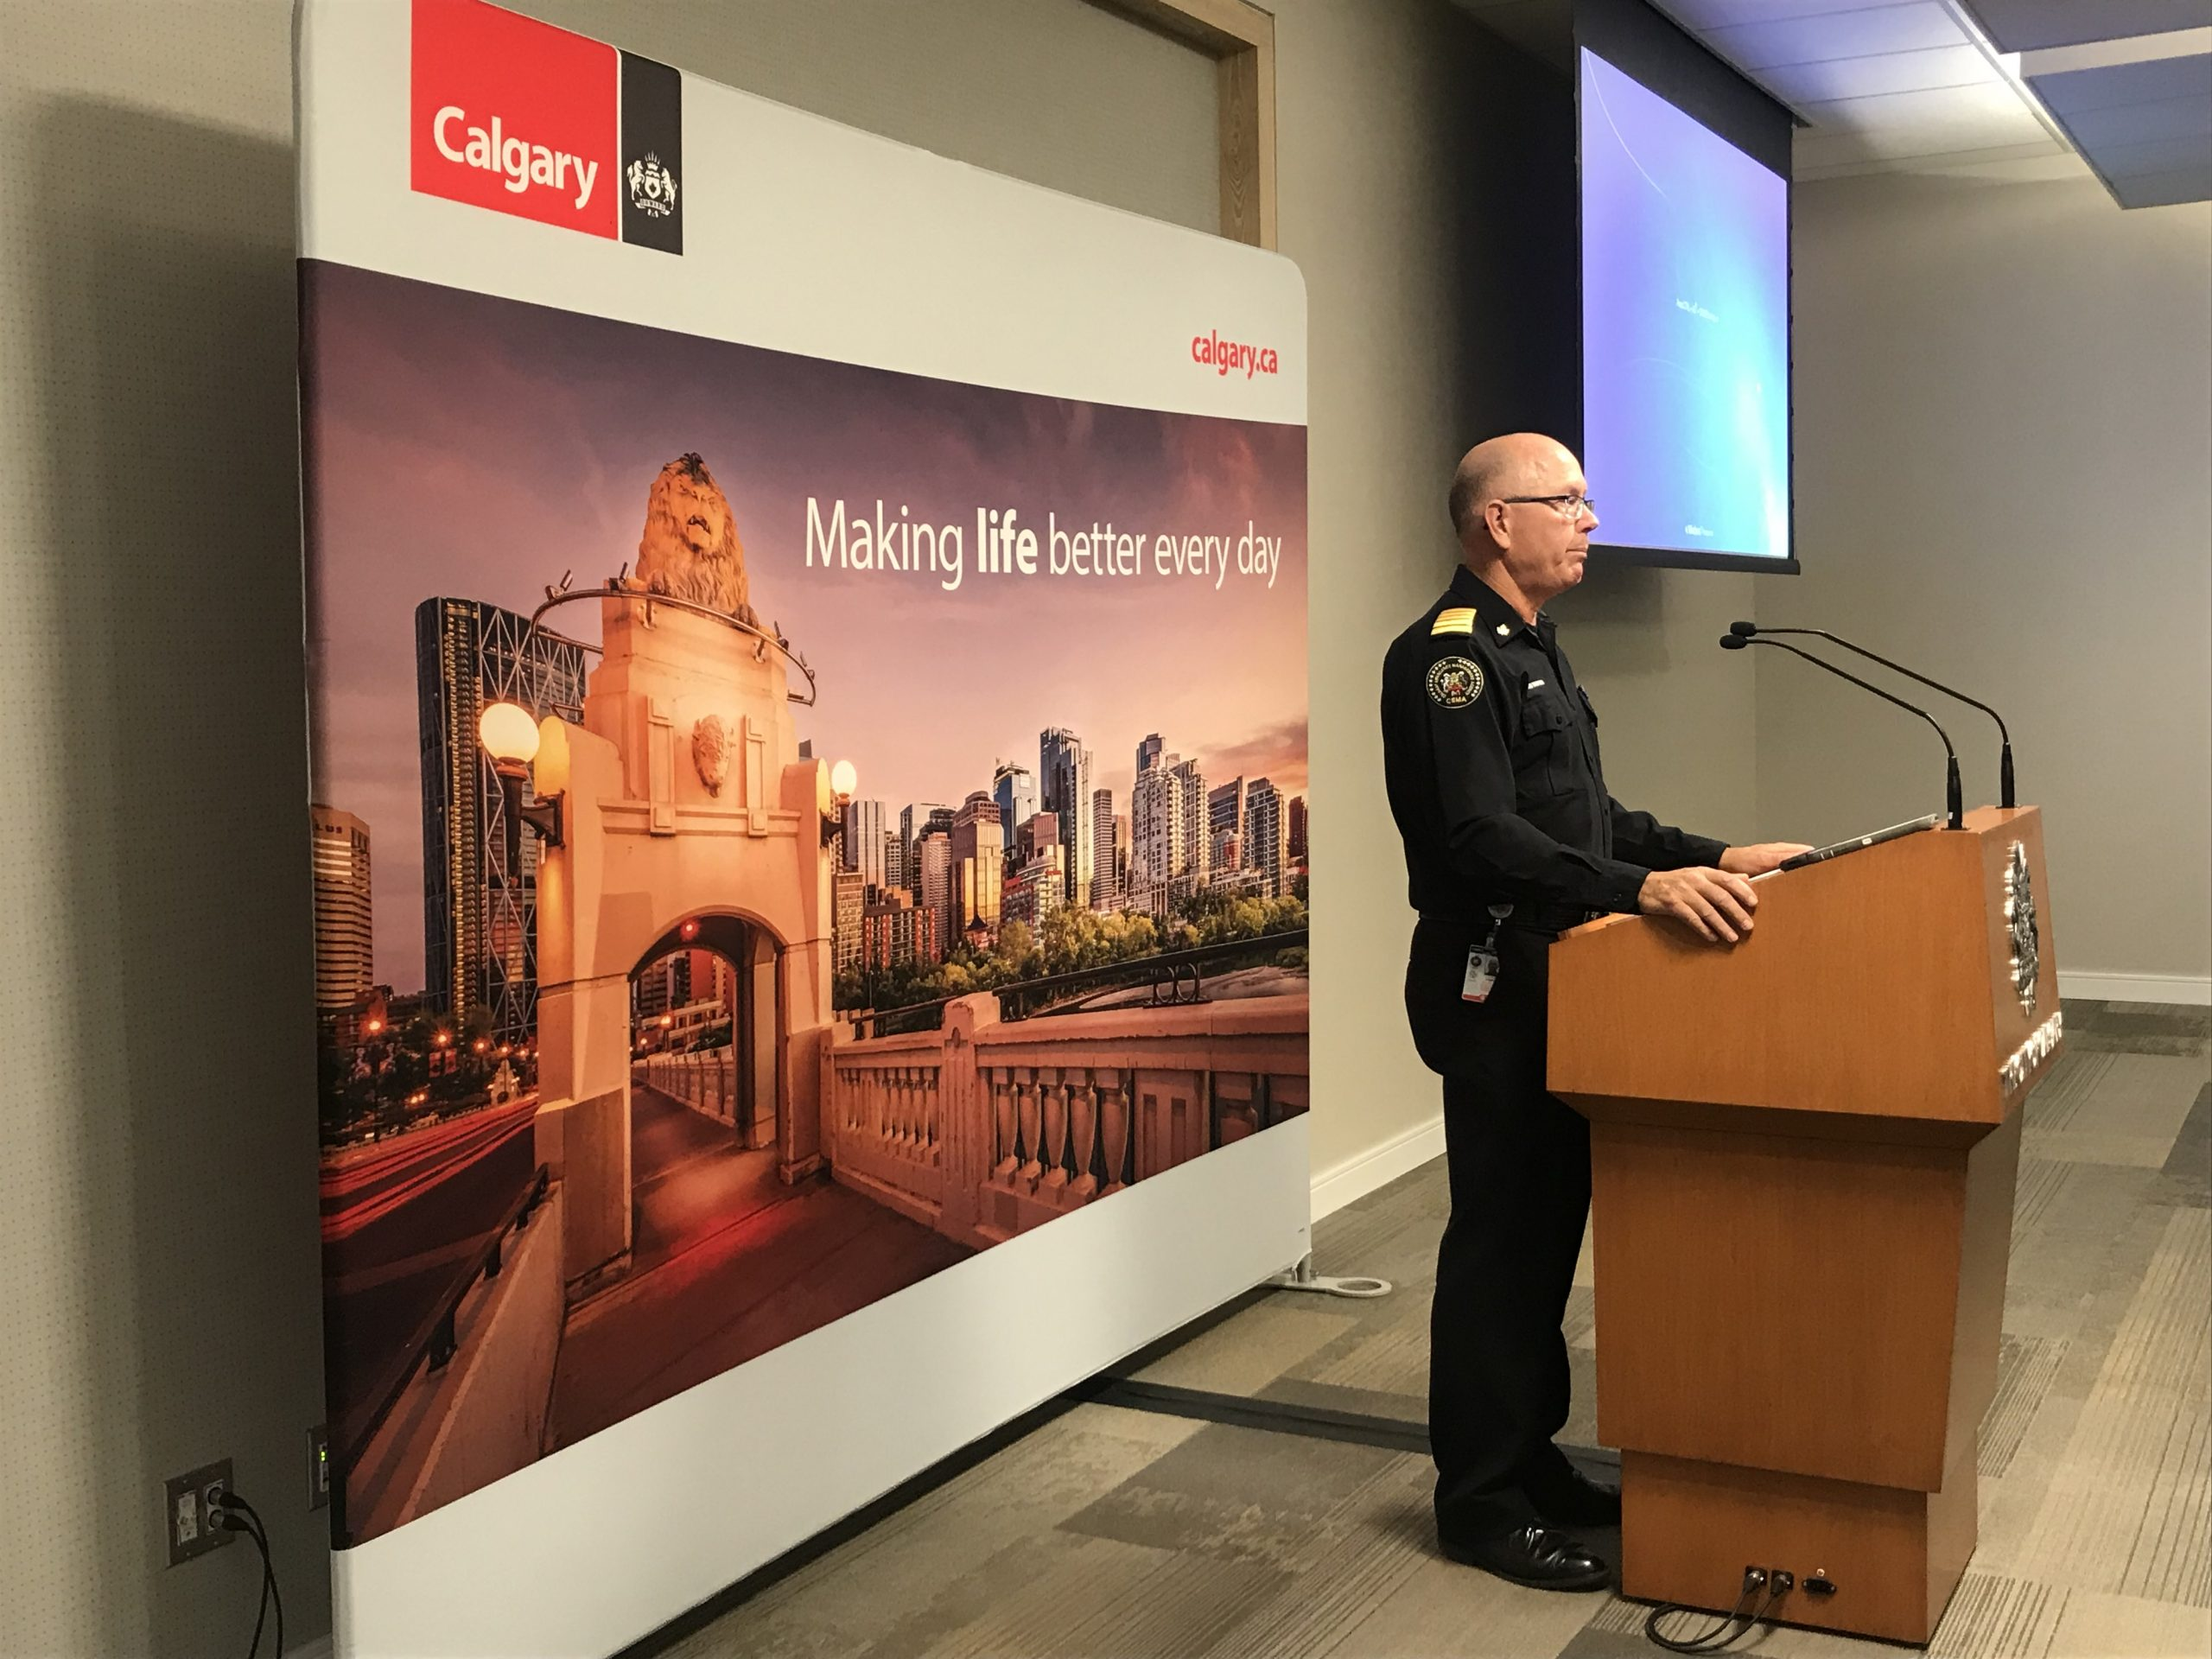 The City of Calgary to use mobiles devices to alert citizens of emergency situations.